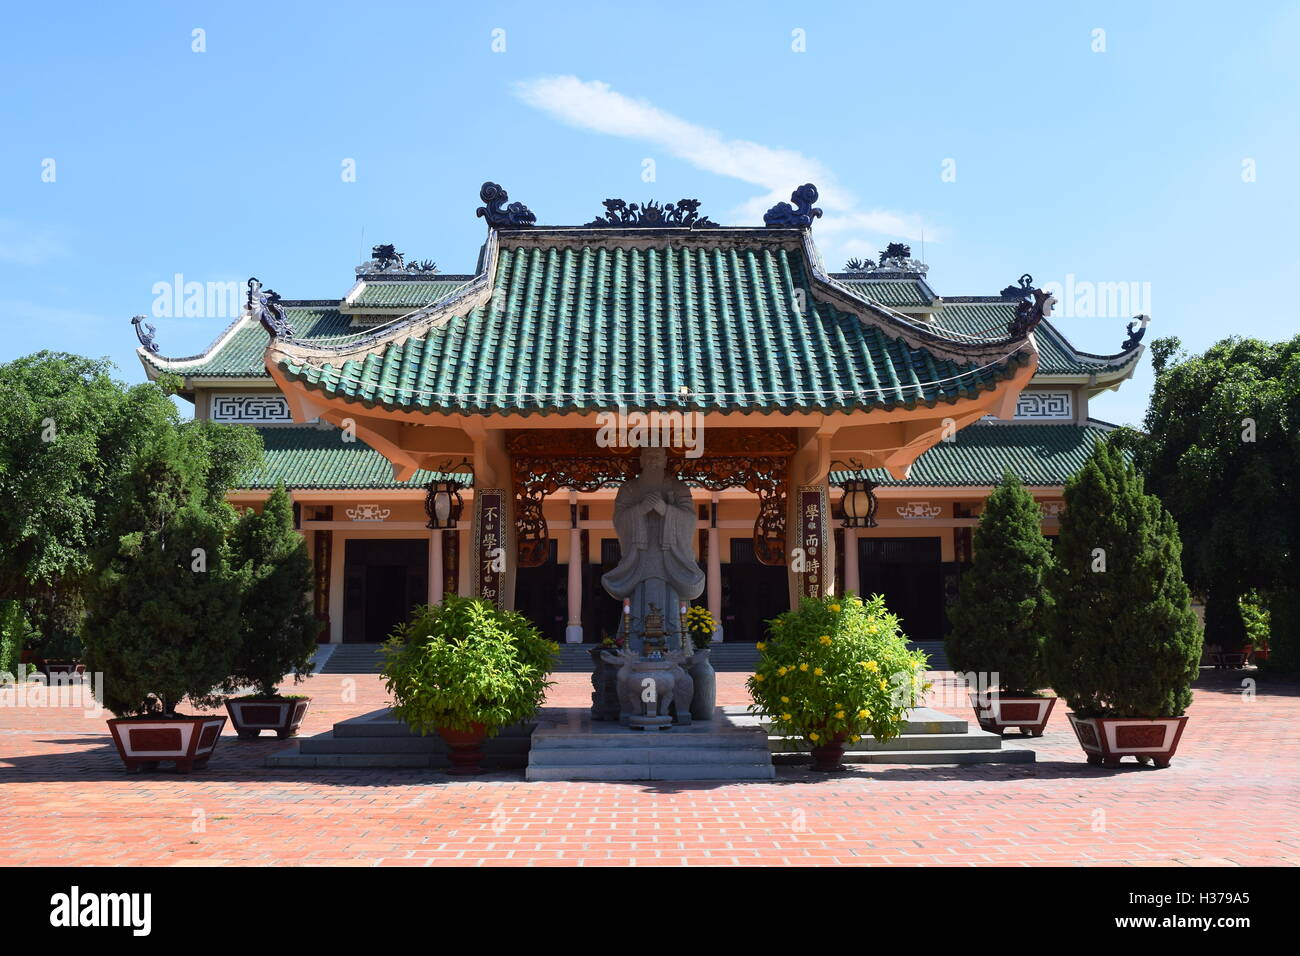 The Memorial of Literature Tran Bien temple in Dong Nai, vietnam - Stock Image